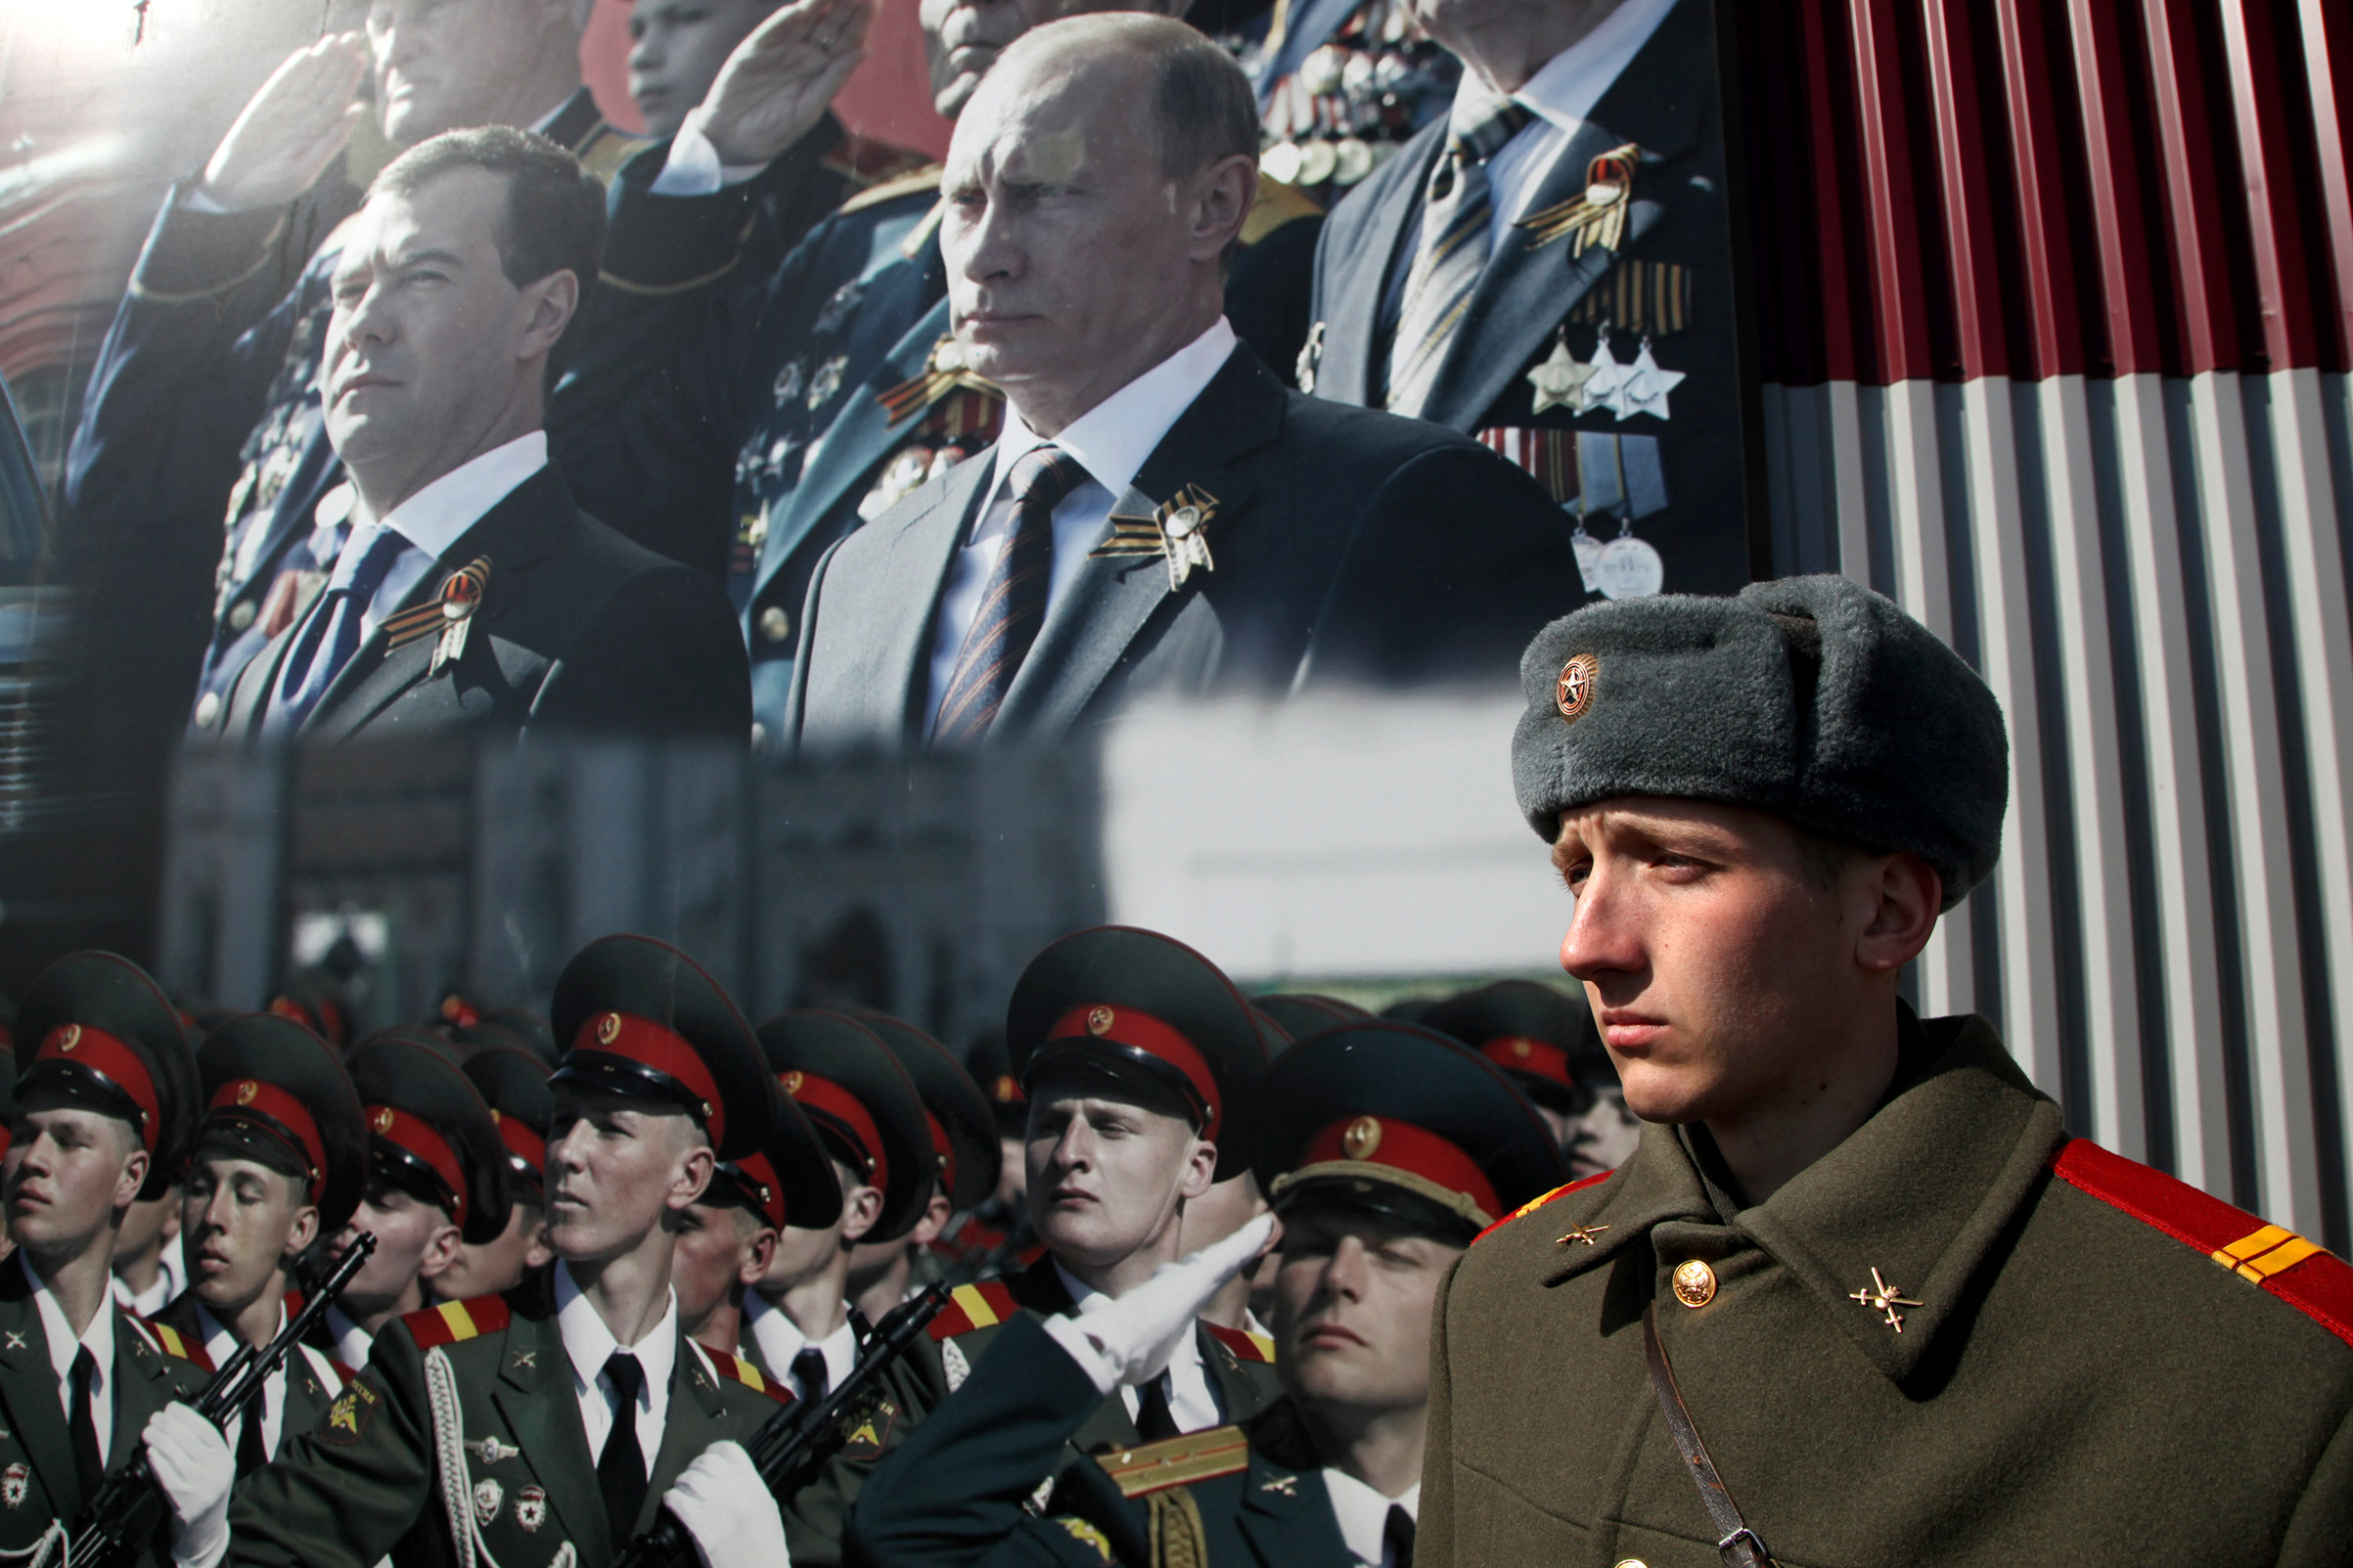 A Russian soldier stands in front of poster with portraits of Russian President-elect Vladimir Putin and outgoing President Dmitry Medvedev during a rehearsal for the Victory Day parade near Moscow on April 4, 2012. The parade is dedicated to the anniversary of the Soviet victory over Nazi Germany in World War II.